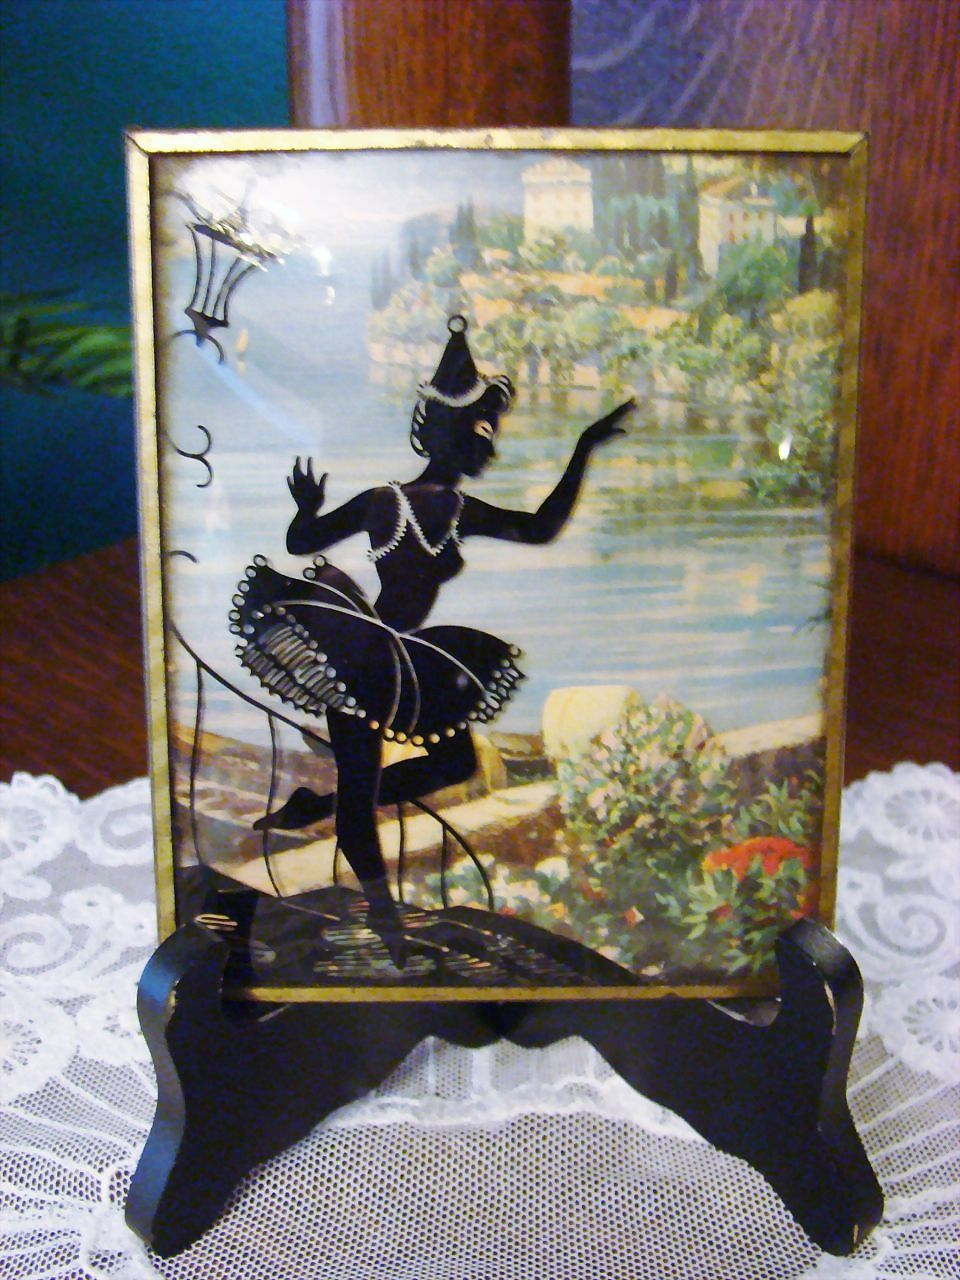 Silhouette/Reverse Painted Glass Ballerina